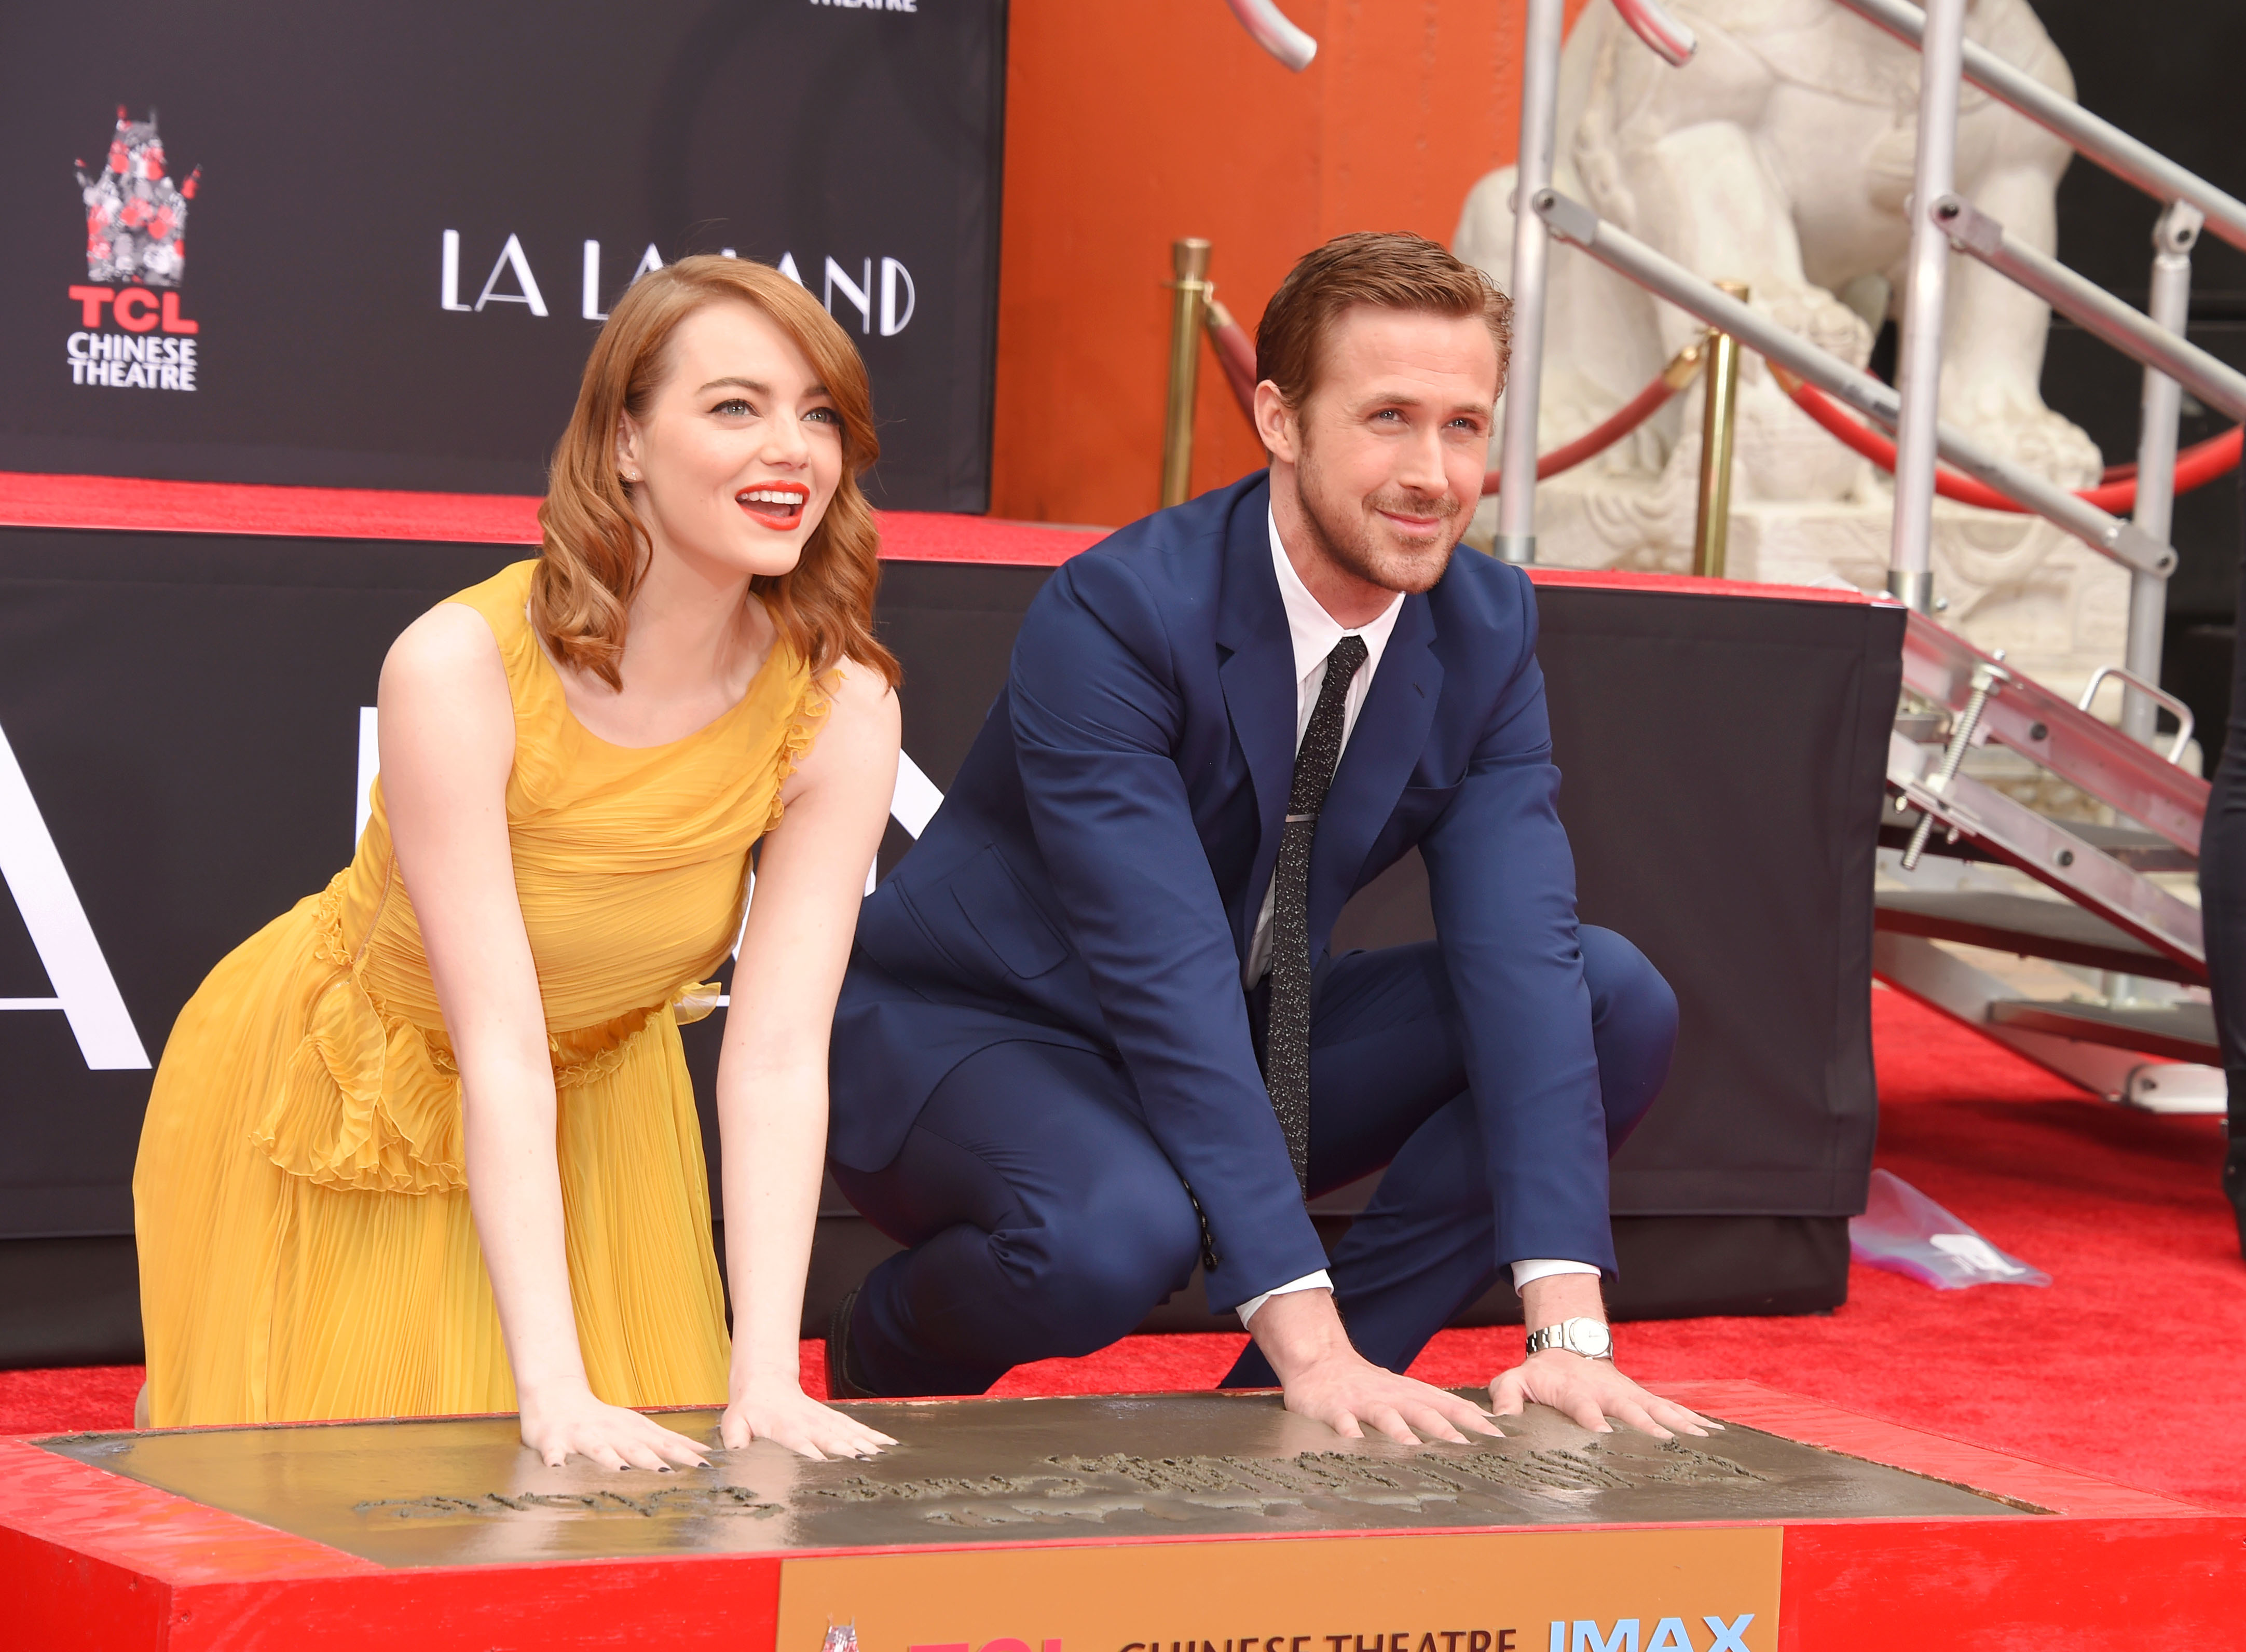 HOLLYWOOD, CA - DECEMBER 07: Actress Emma Stone (L) and actor Ryan Gosling attend the Hand And Footprint Ceremony for Ryan Gosling and Emma Stone at the TCL Chinese Theatre IMAX on December 7, 2016 in Hollywood, California. (Photo by Jeffrey Mayer/WireImage)